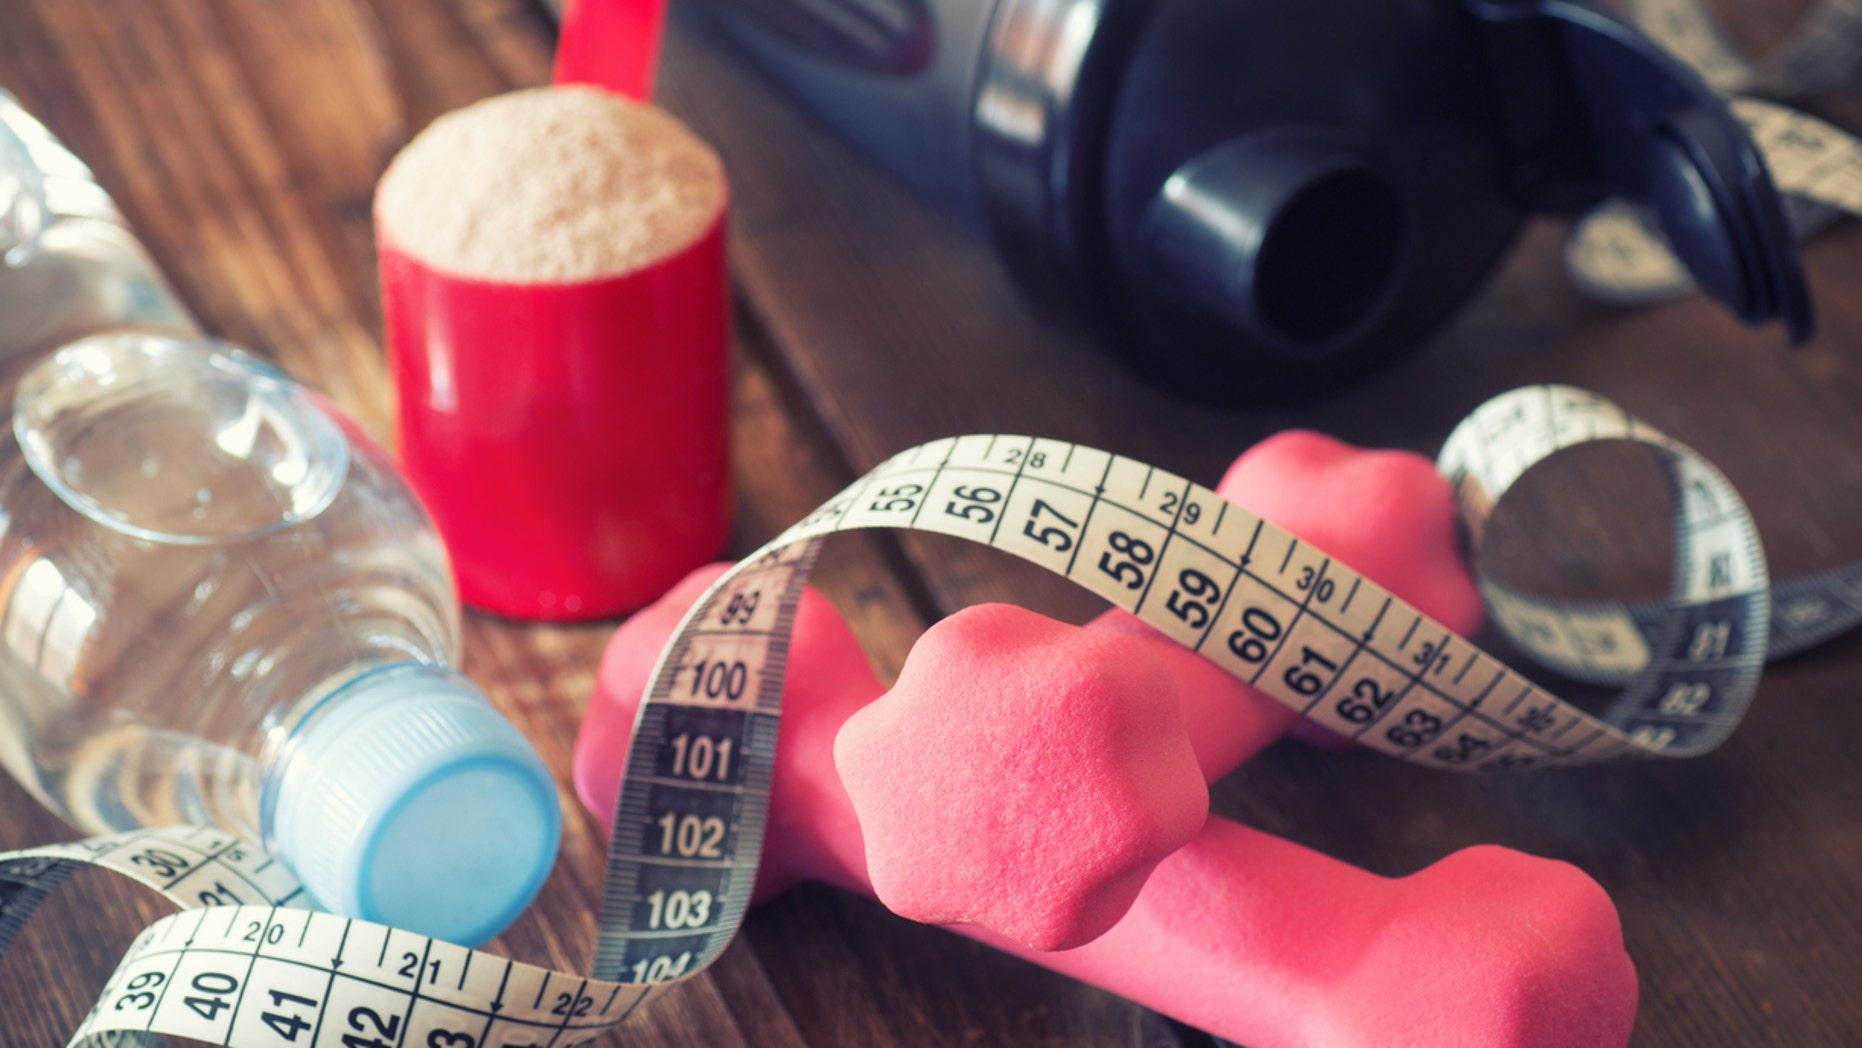 weight loss concept with tape measure whey powder, pink dumbbells and black shaker